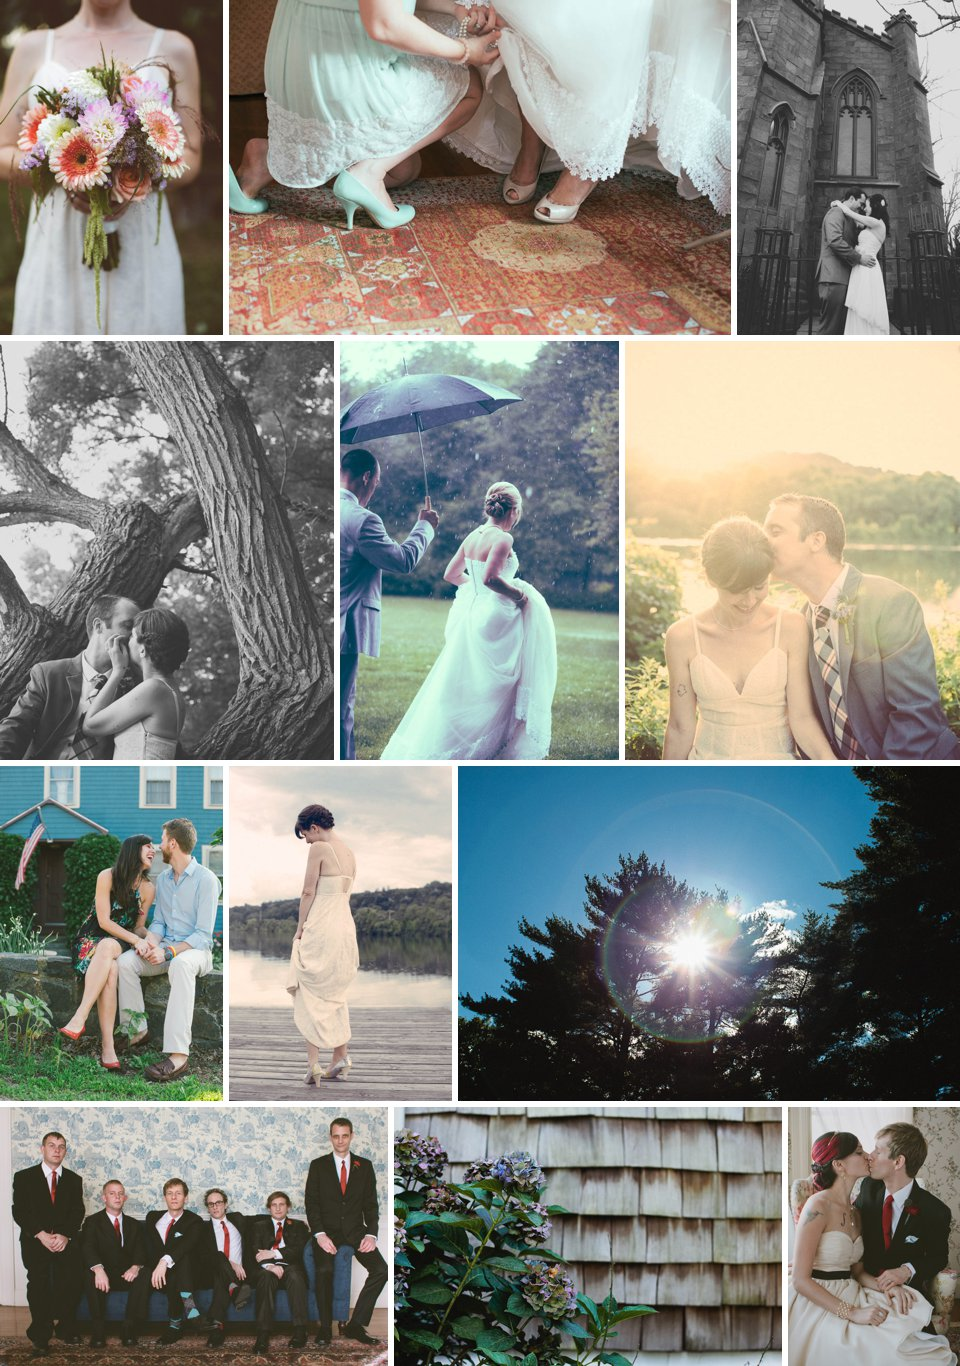 whimsical rustic ethereal vintage wedding photography boston